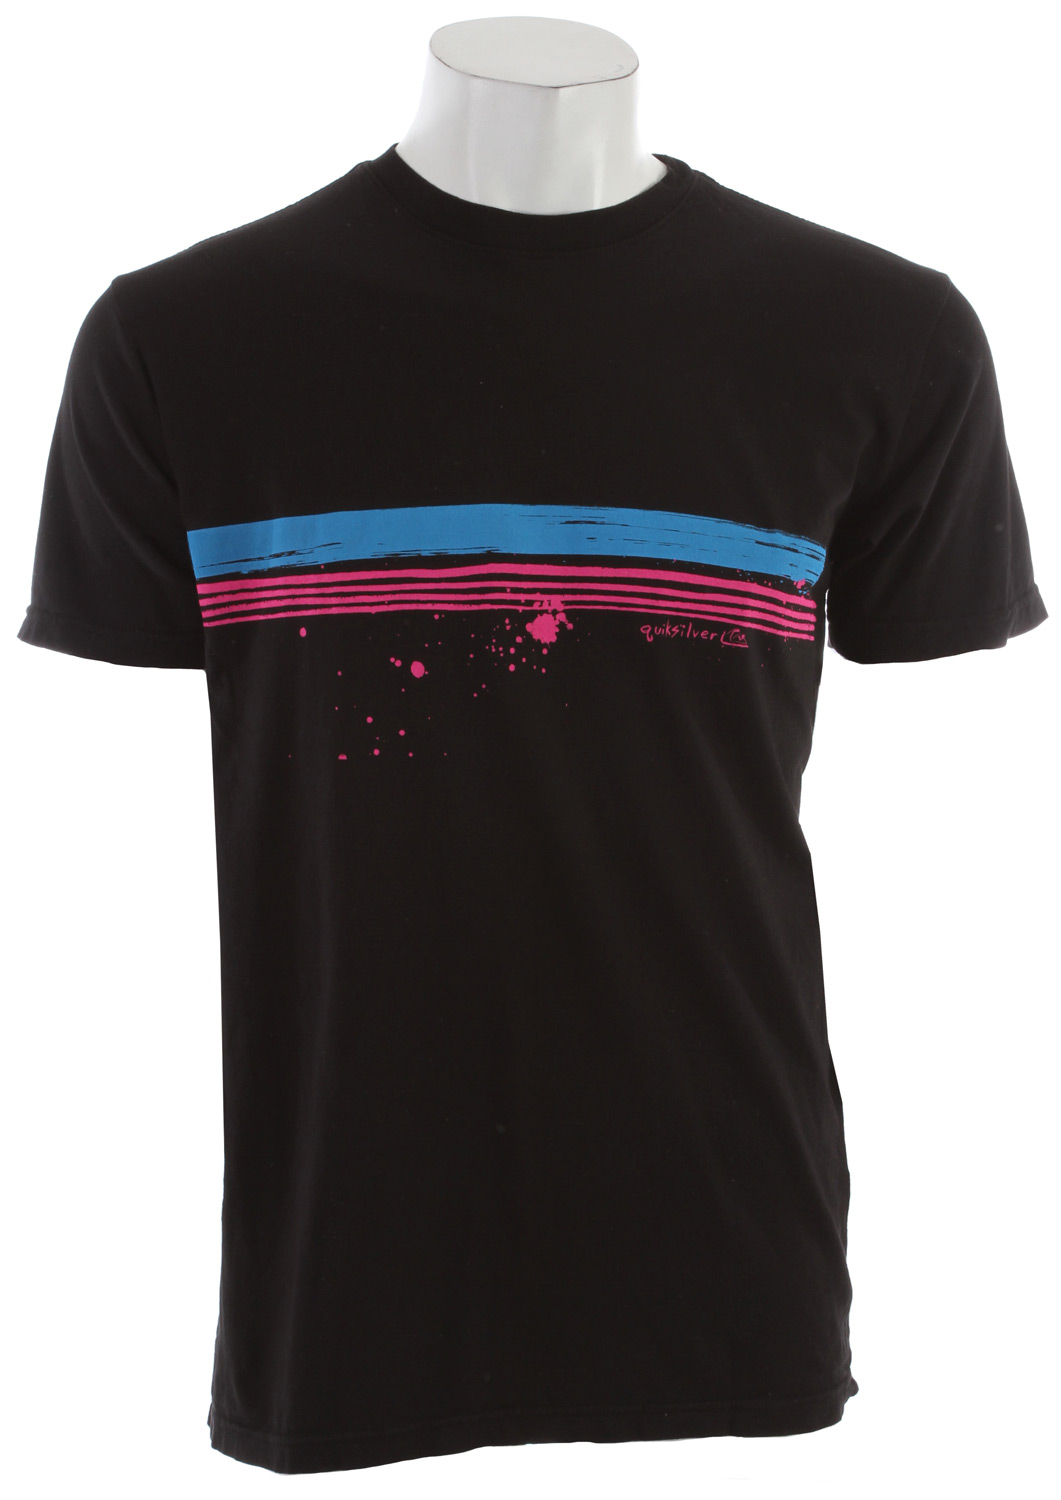 Surf Key Features of the Quiksilver Treason Neon T-Shirt: 100% Cotton Machine wash Imported - $15.95